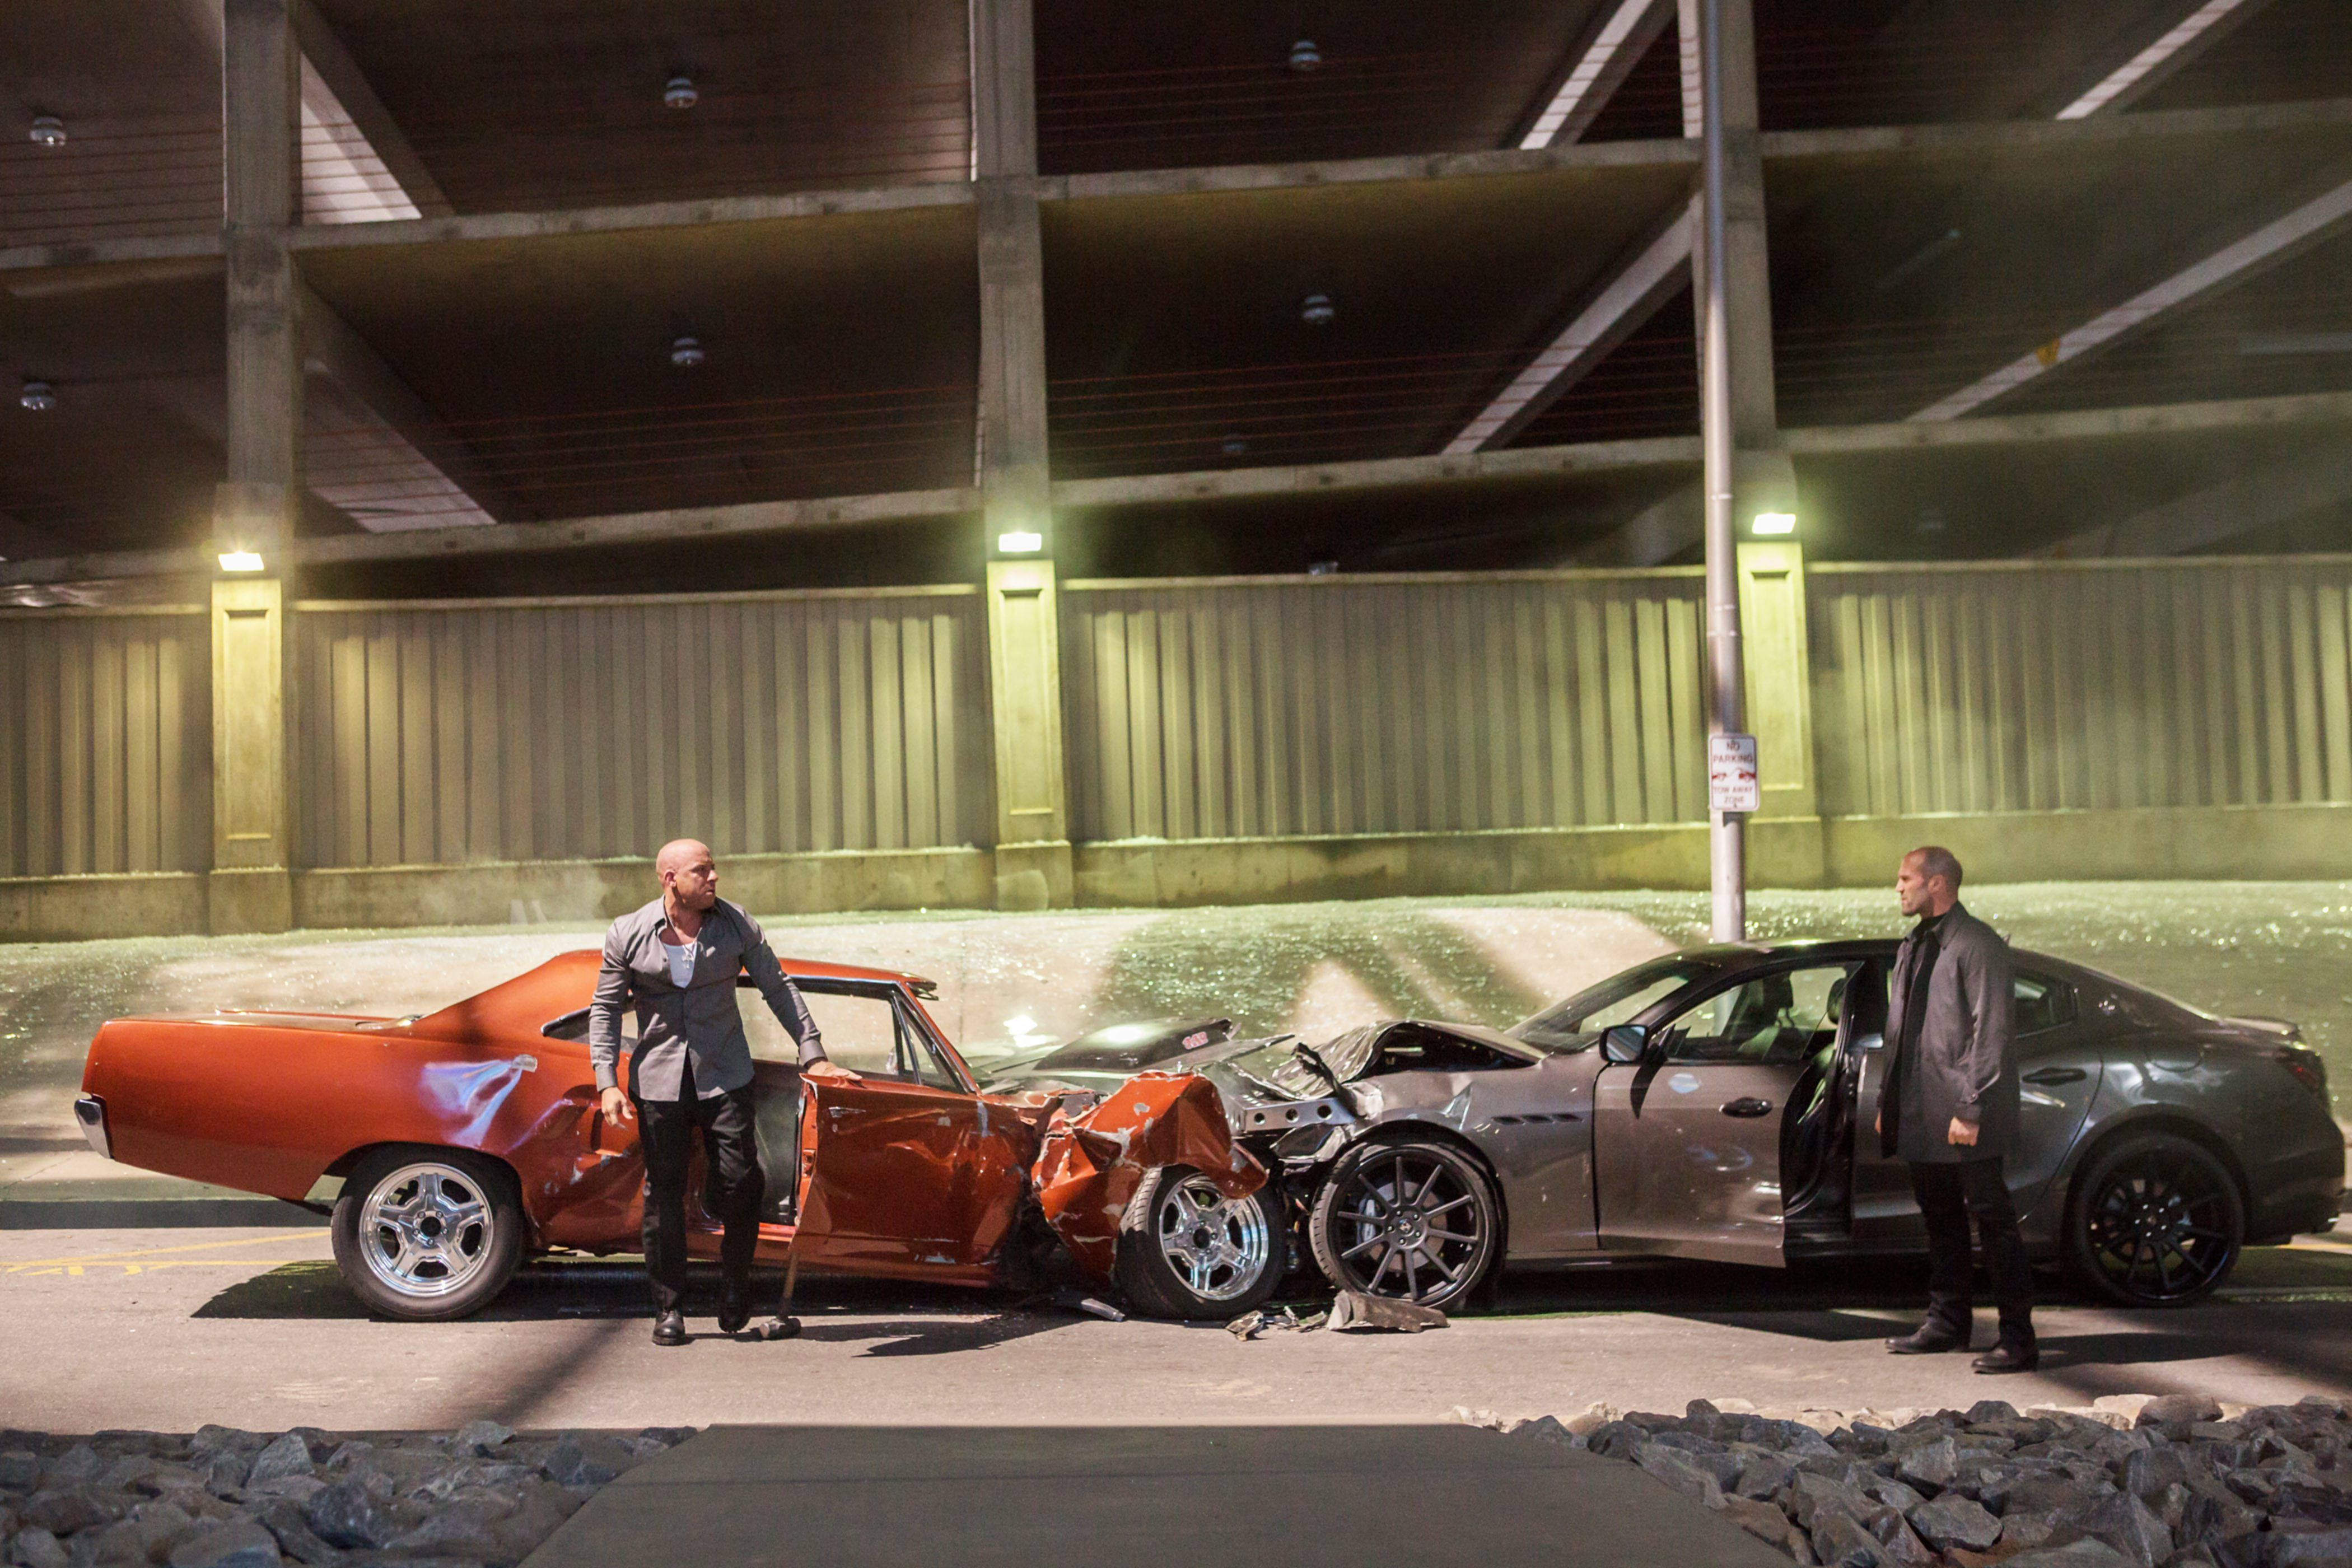 Furious 7 Breaks Box Office Records With Opening Weekend